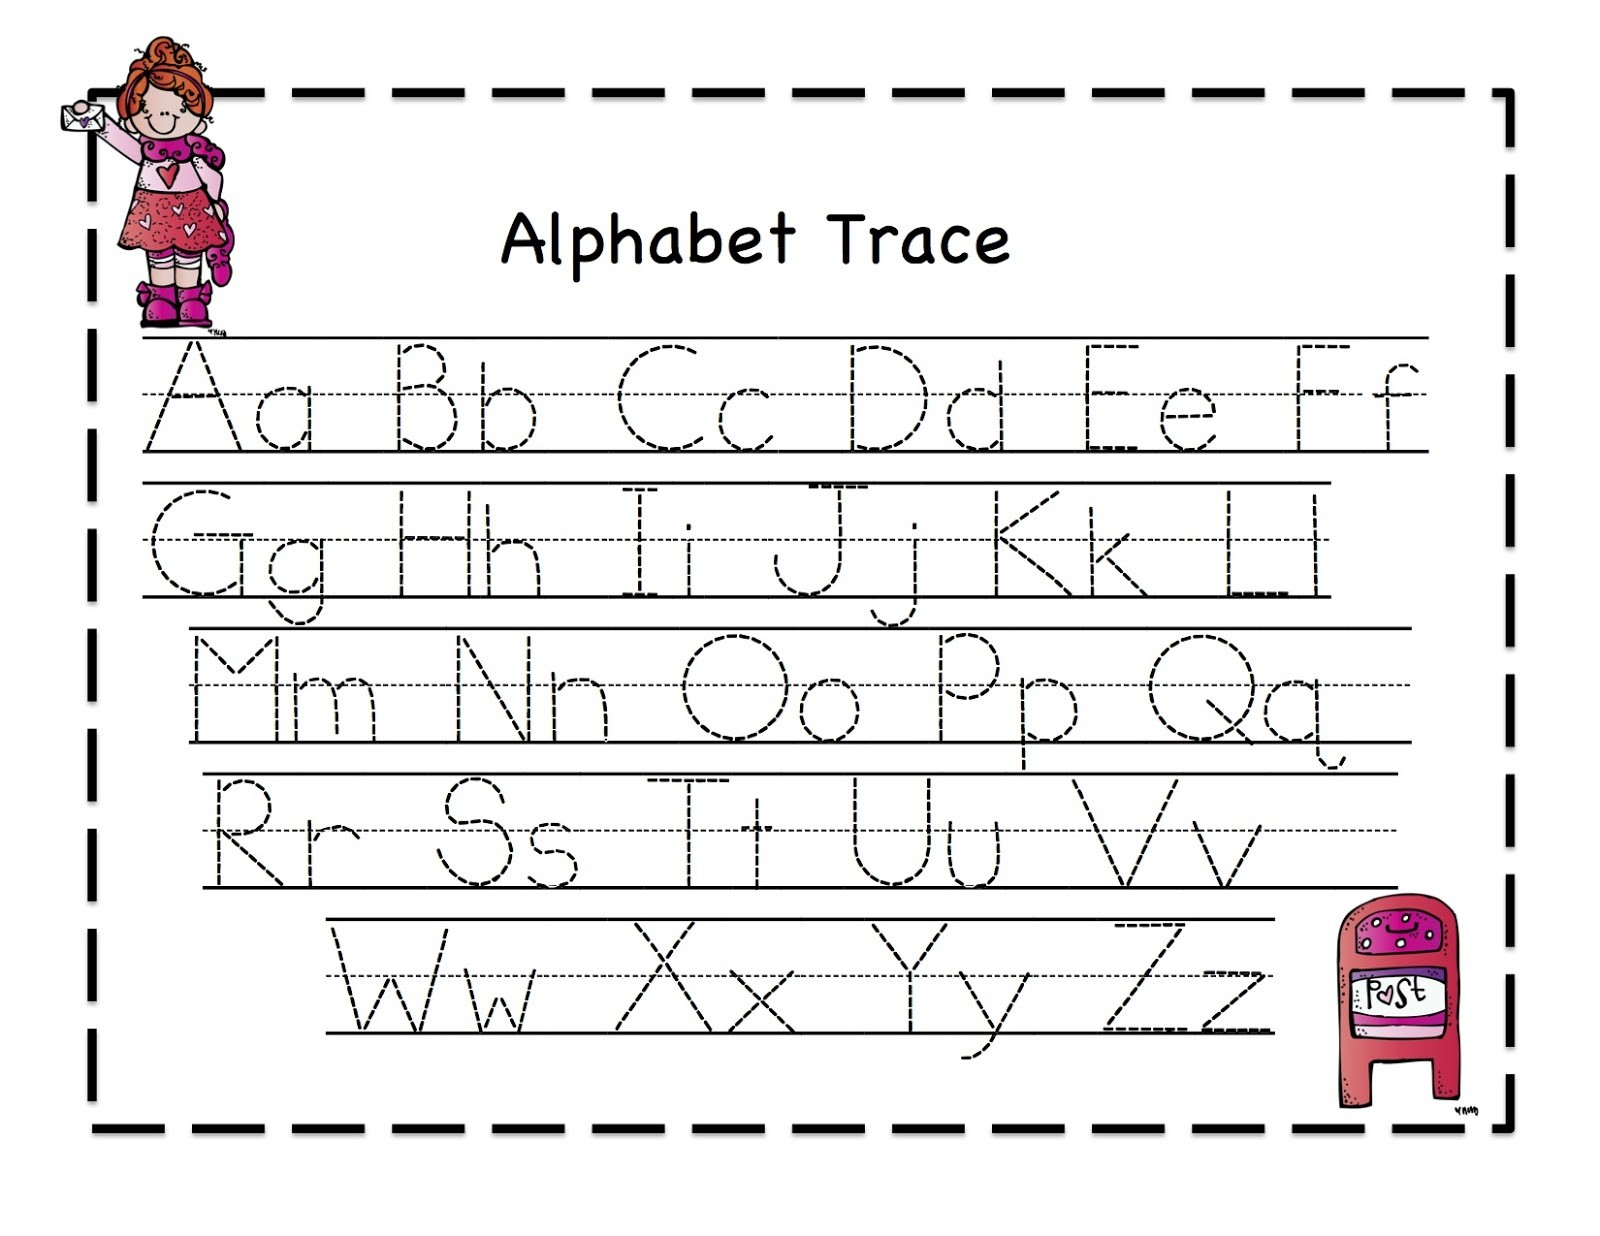 Free Printable Preschool Worksheets Tracing Letters To Download - Free Printable Preschool Worksheets